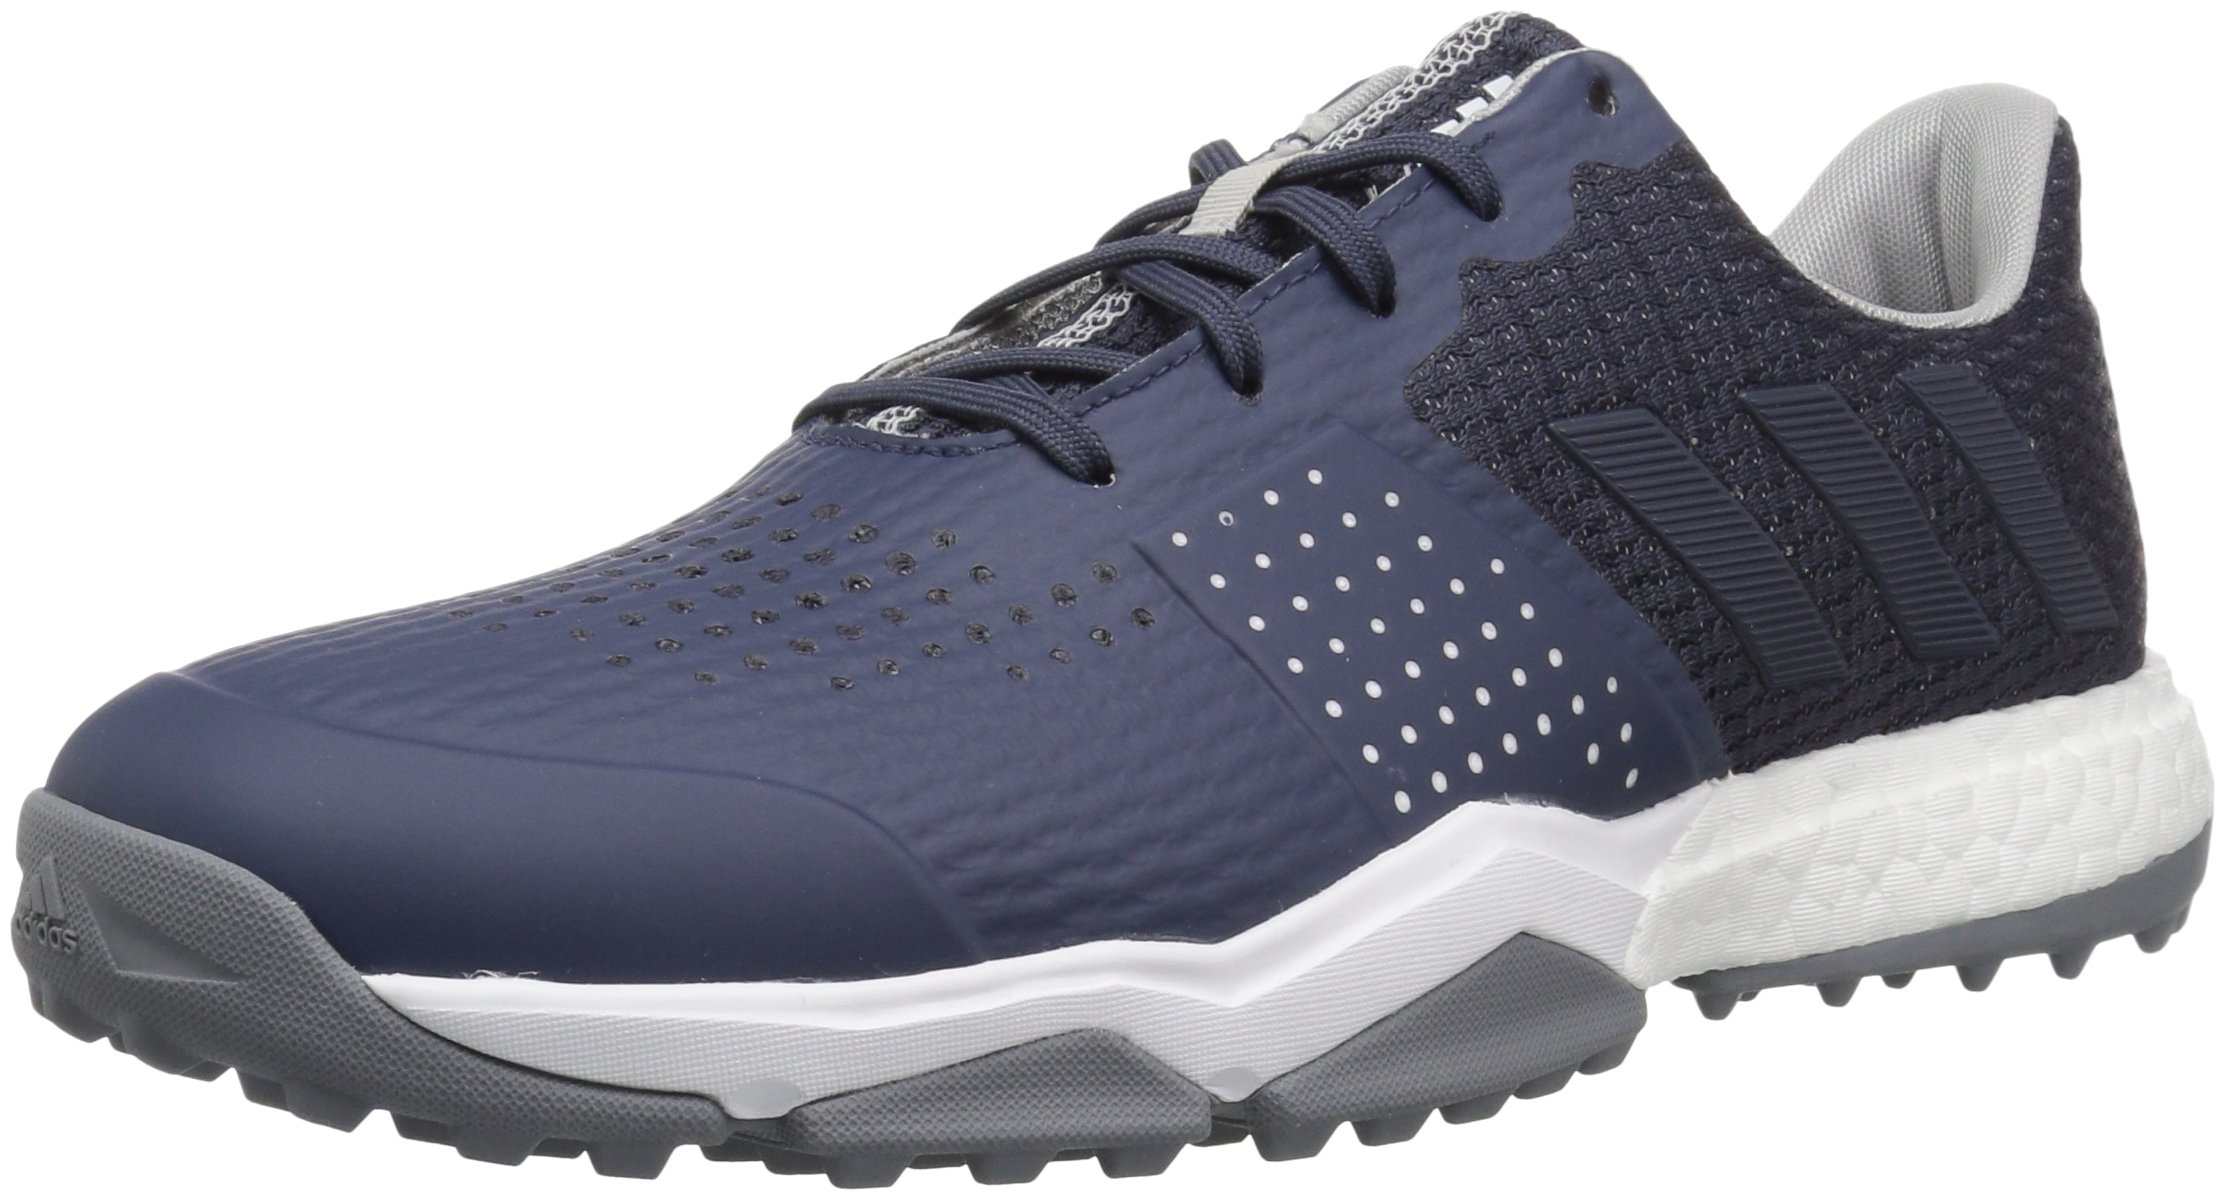 adidas Men's Adipower s Boost 3 Golf Shoe, Trace Blue/Silver Metallic, 10 M US by adidas